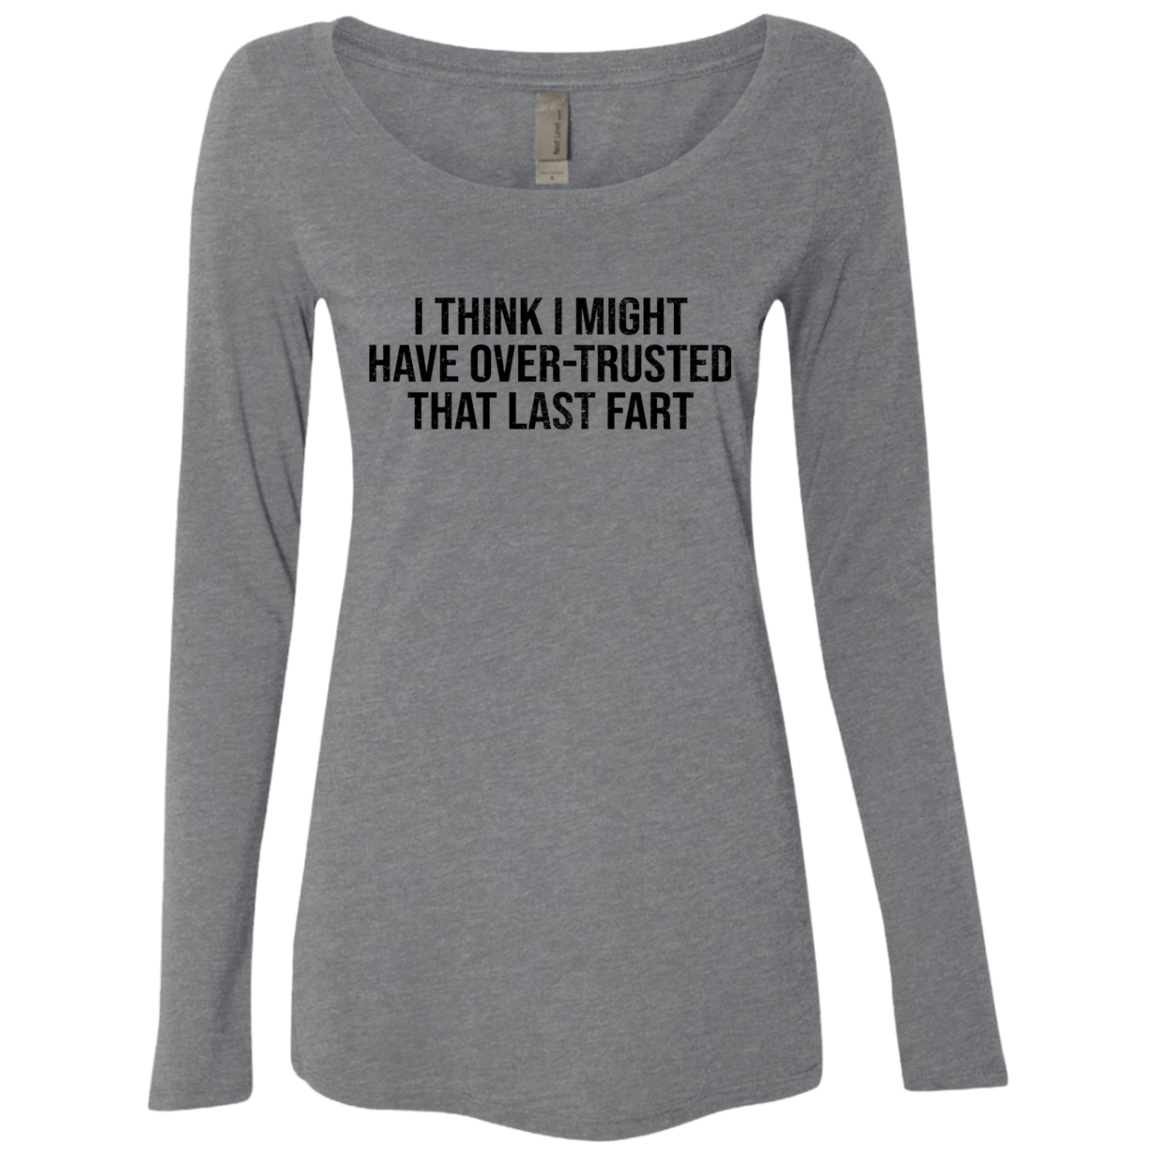 I Think I Might Have Over-Trusted That Last Fart Women's Long Sleeve Tee